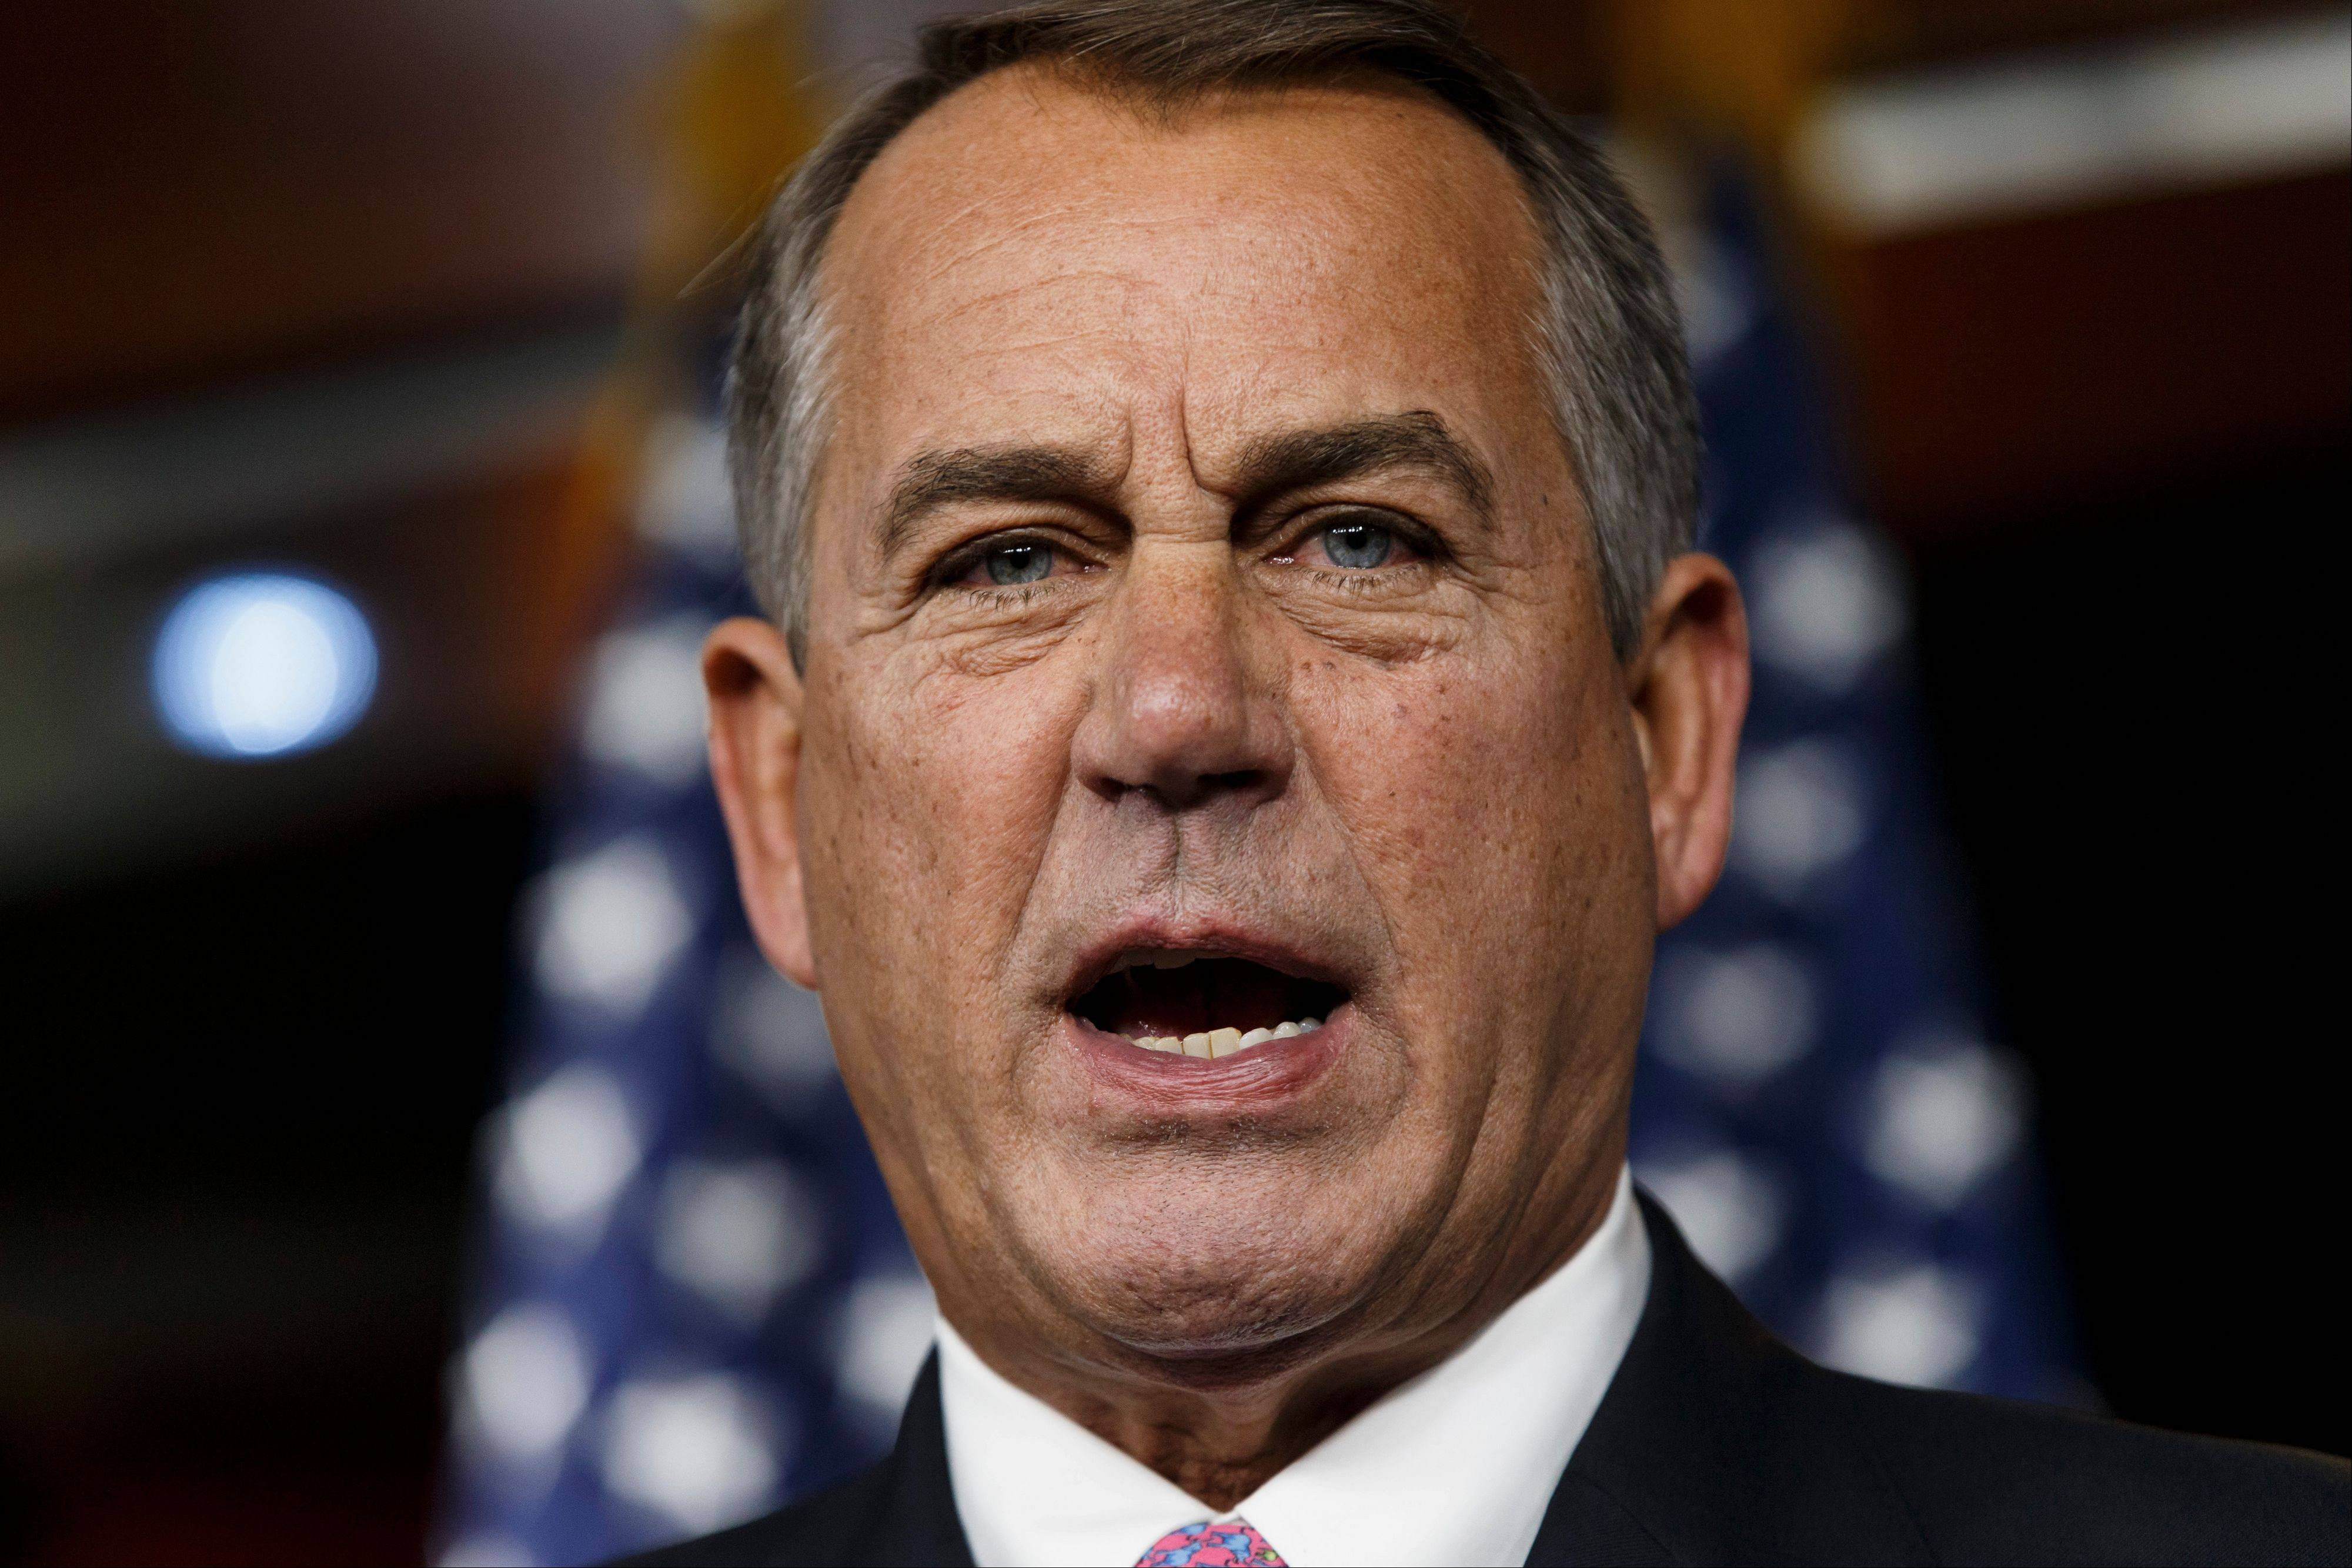 House Speaker John Boehner said Thursday it will be difficult to pass immigration legislation this year, dimming prospects for one of President Barack Obama's top domestic priorities.